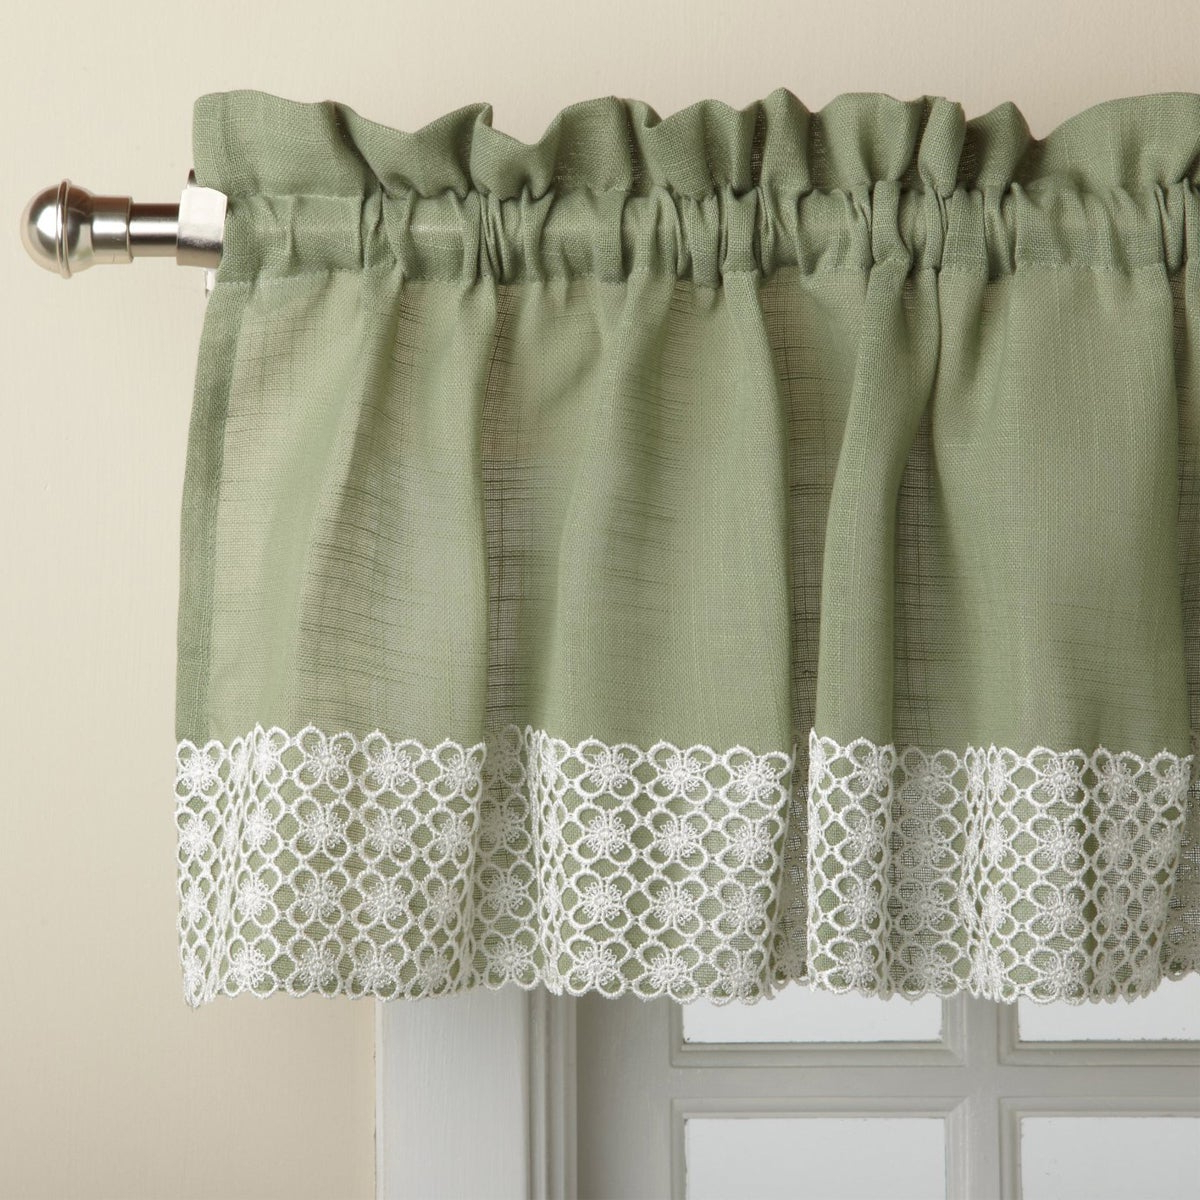 Well Liked Country Style Curtain Parts With White Daisy Lace Accent For Sage Country Style Curtain Parts With White Daisy Lace Accent (separates Tiers, Swags And Valances) (View 3 of 20)